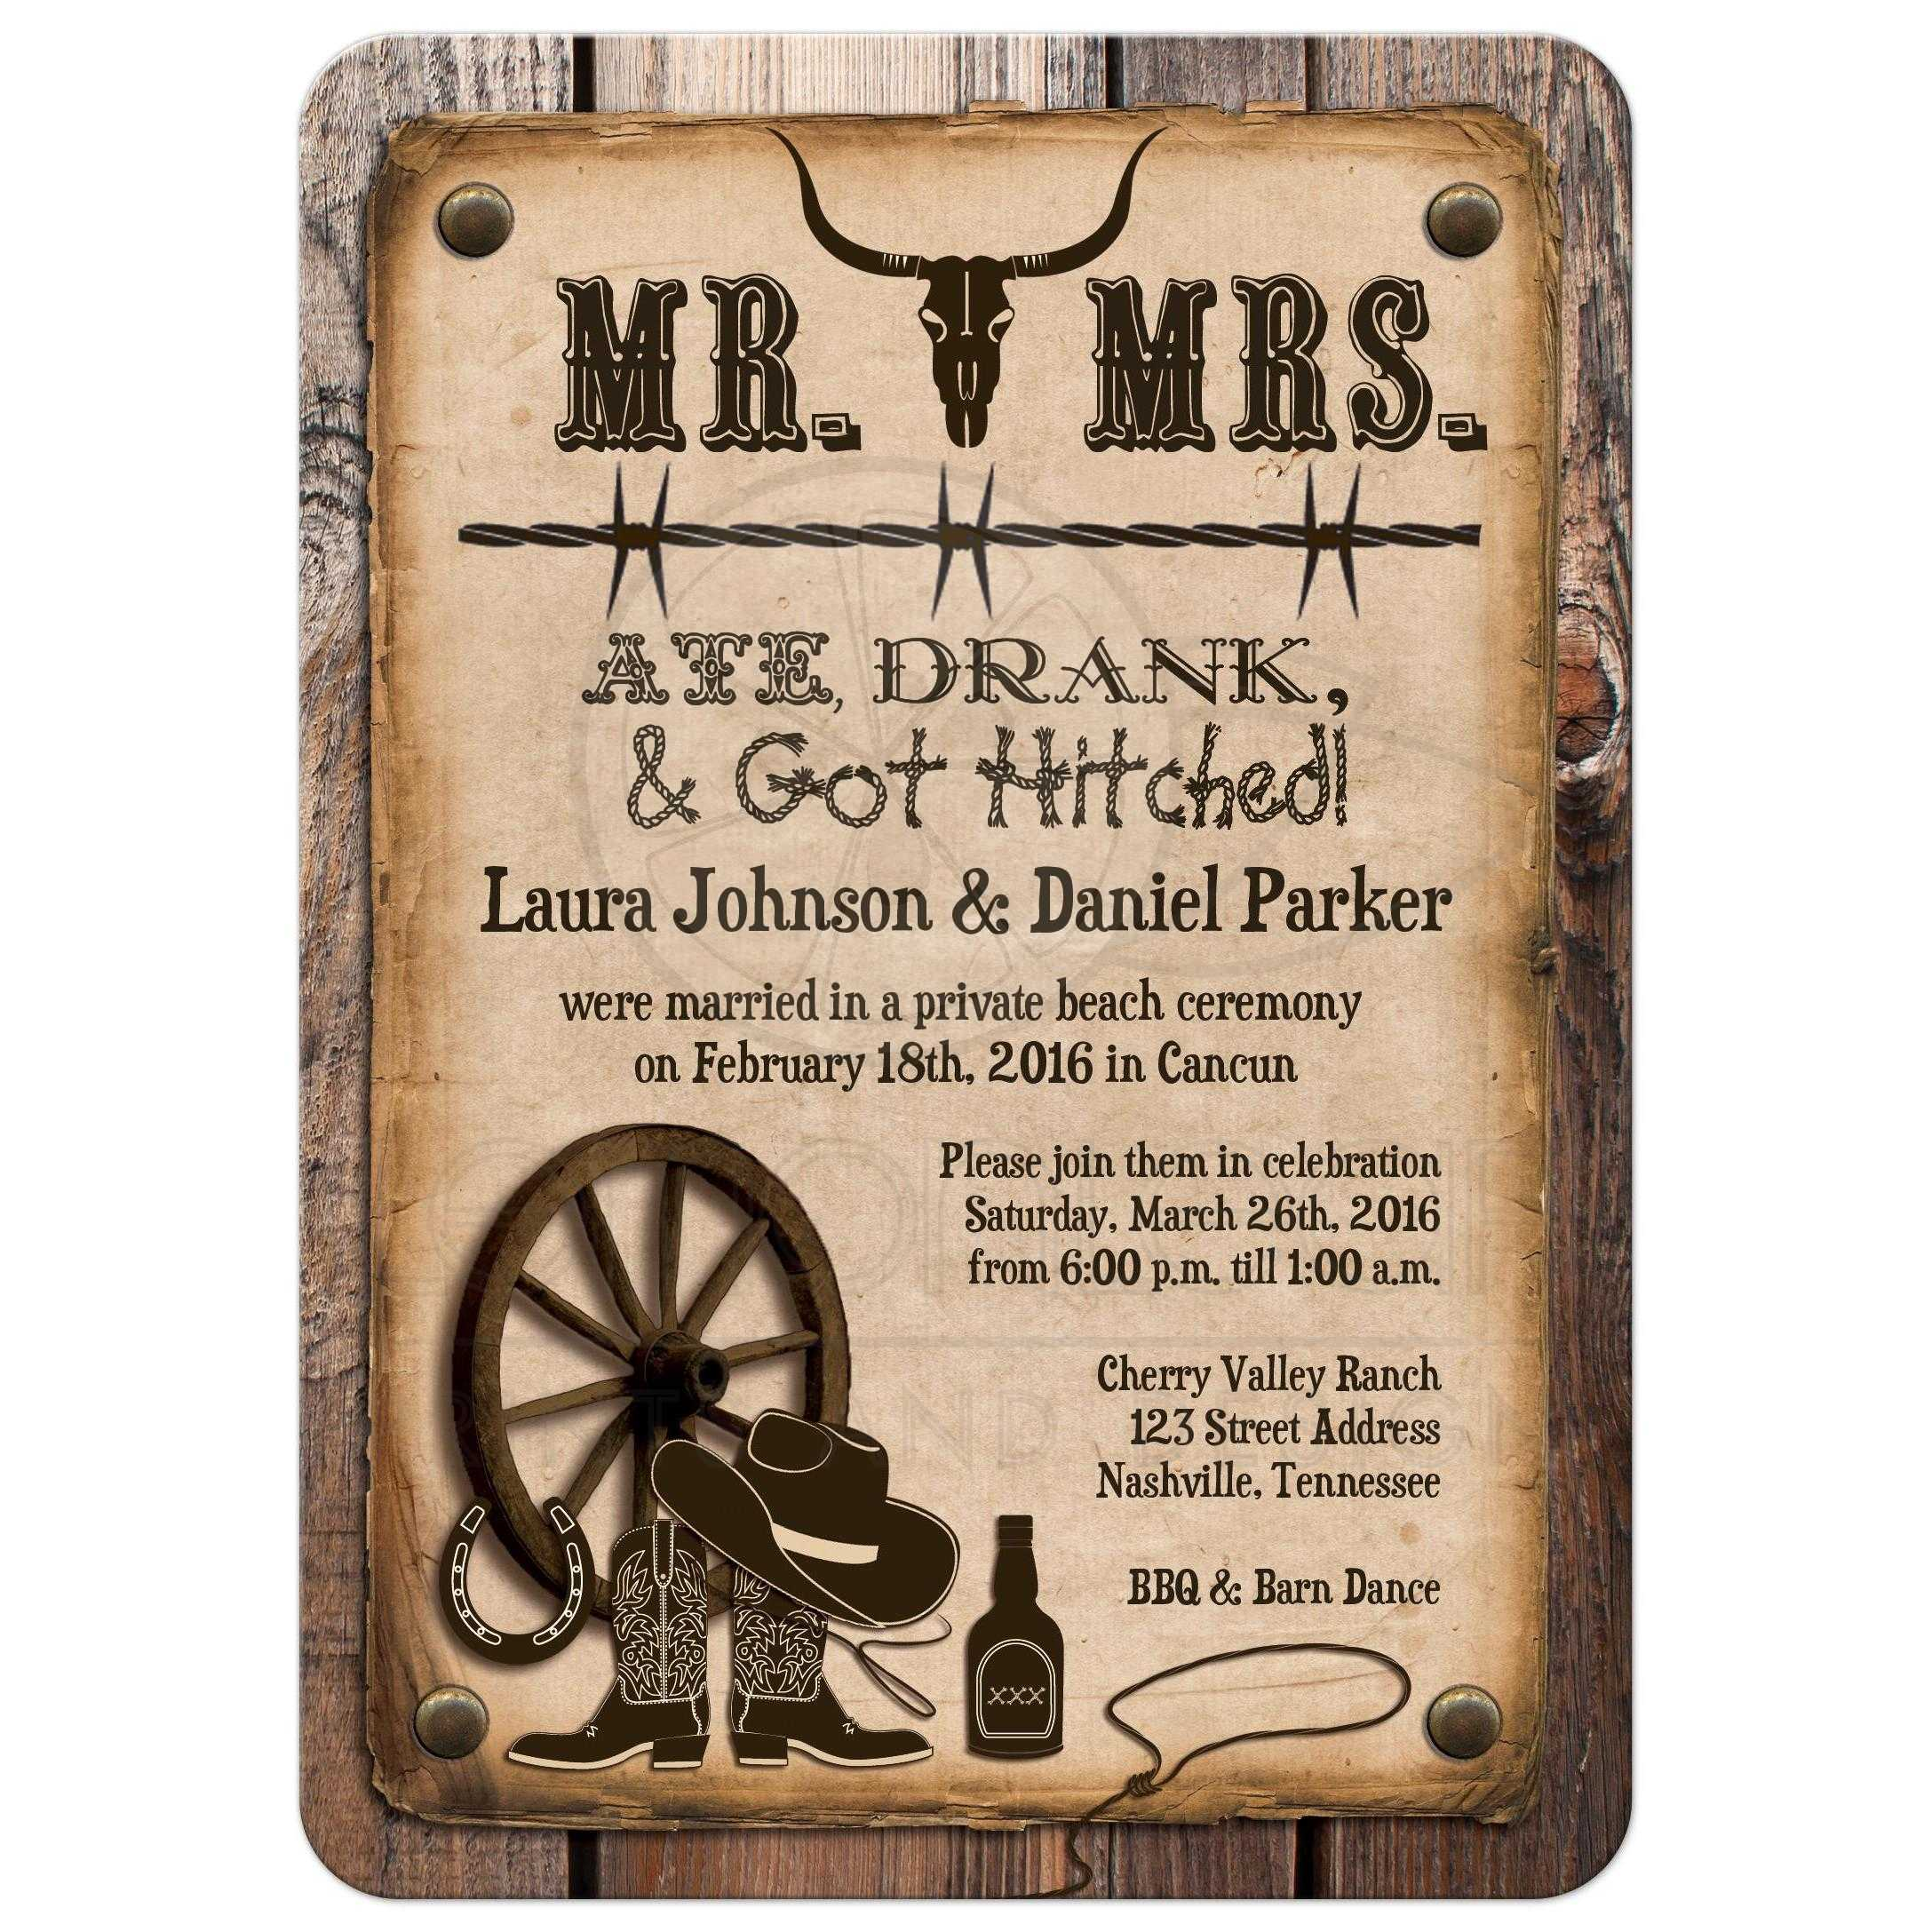 Marvelous ... Post Wedding Reception Only Invitations With Western Theme ...